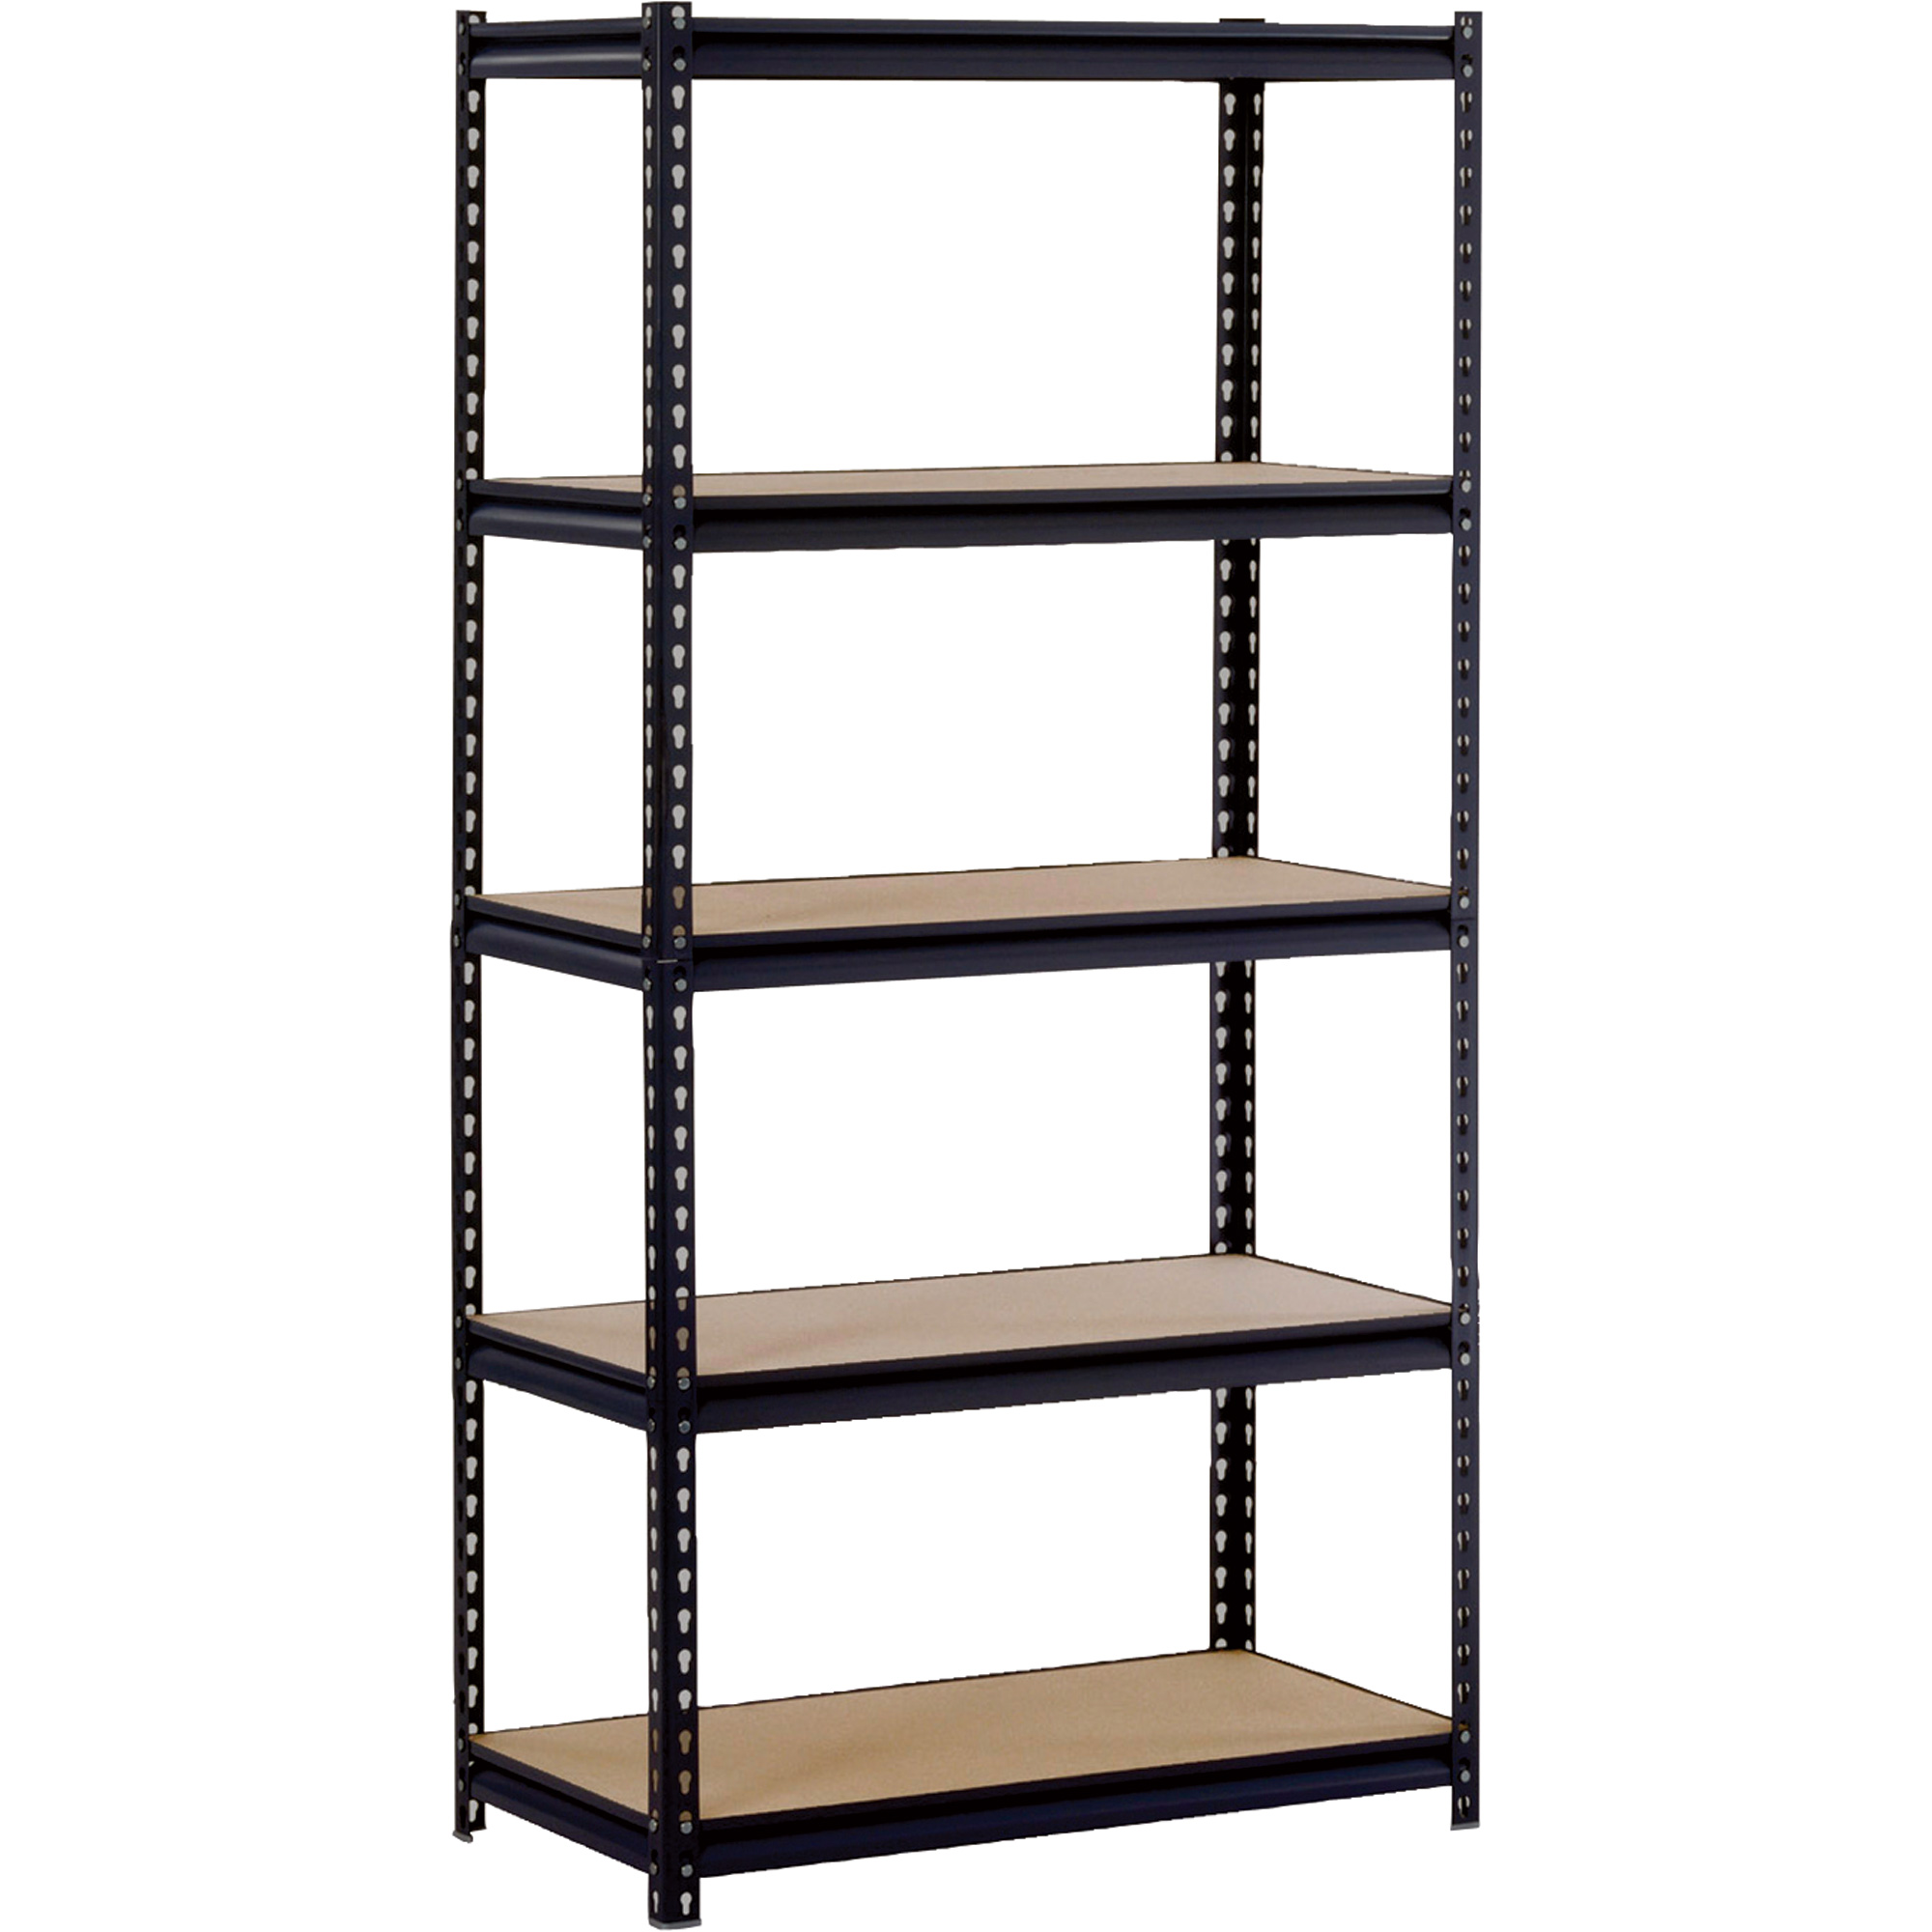 Cool Black Four Tier Edsal Shelving Made Of Iron For Garage Furniture Ideas